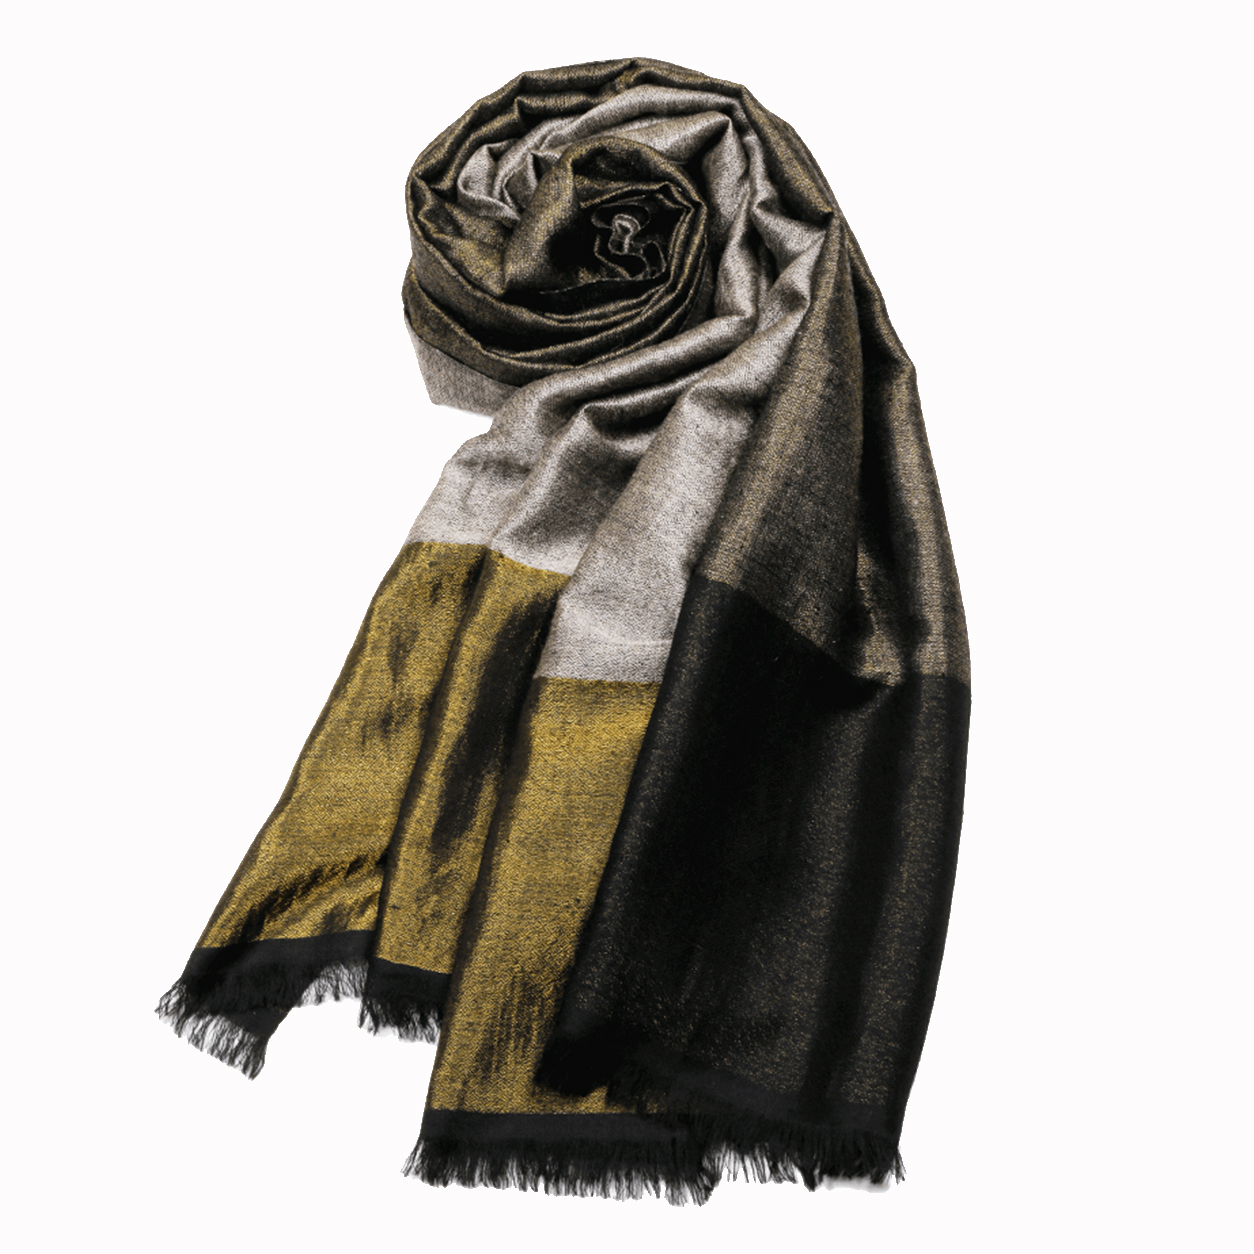 Metallic Dorukha Pashmina Stole - Black and Silver